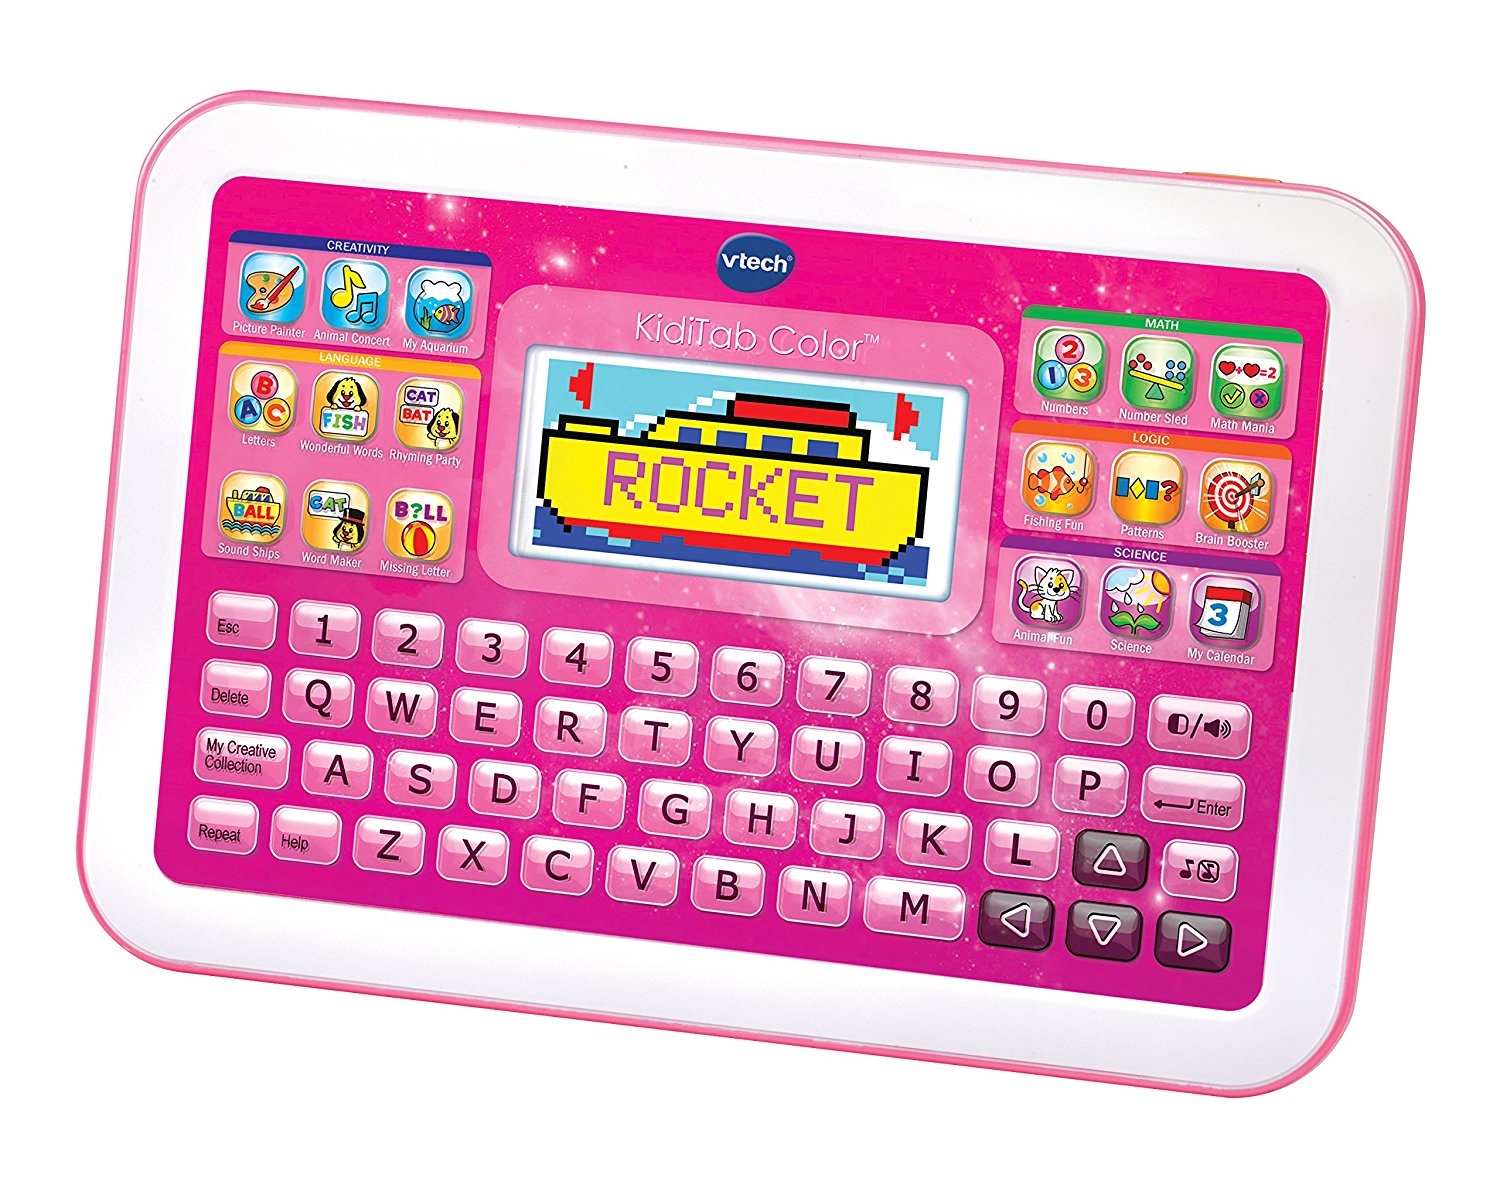 VTech KidiTab Color Play Toy, Pink by VTech Holdings, Ltd